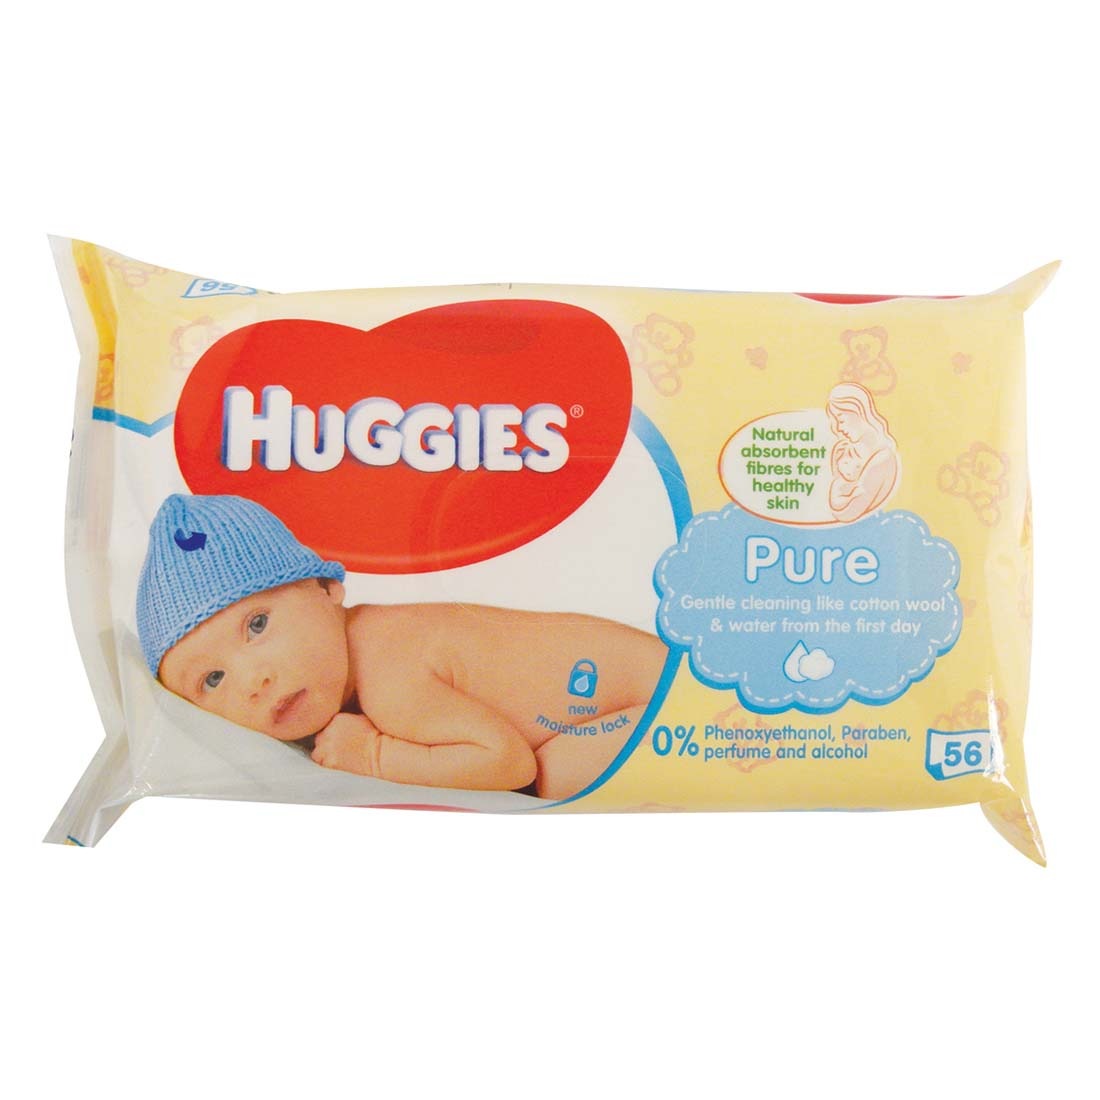 View HUGGIES BABY WIPES 56 COUNT PURE